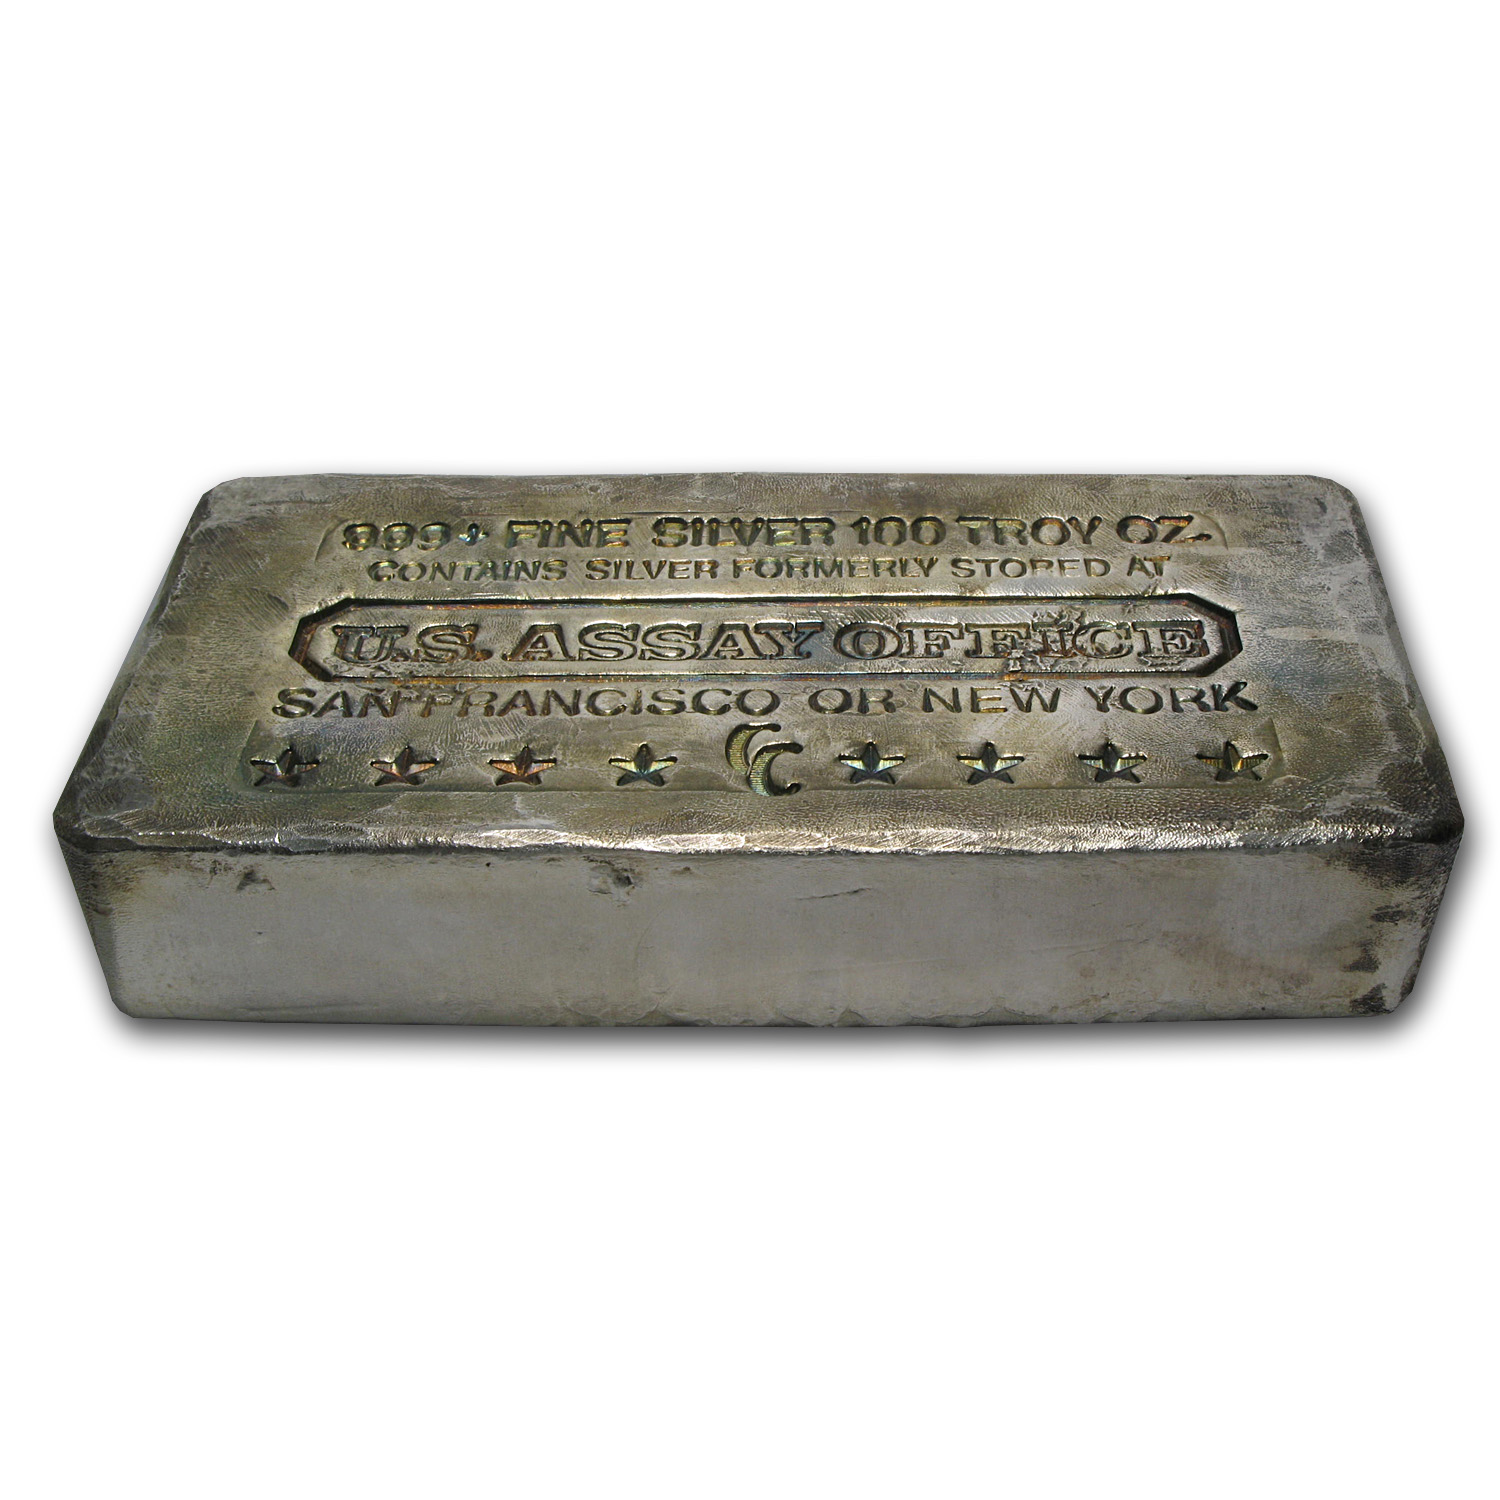 100 oz Silver Bars - U.S. Assay Office (Poured)